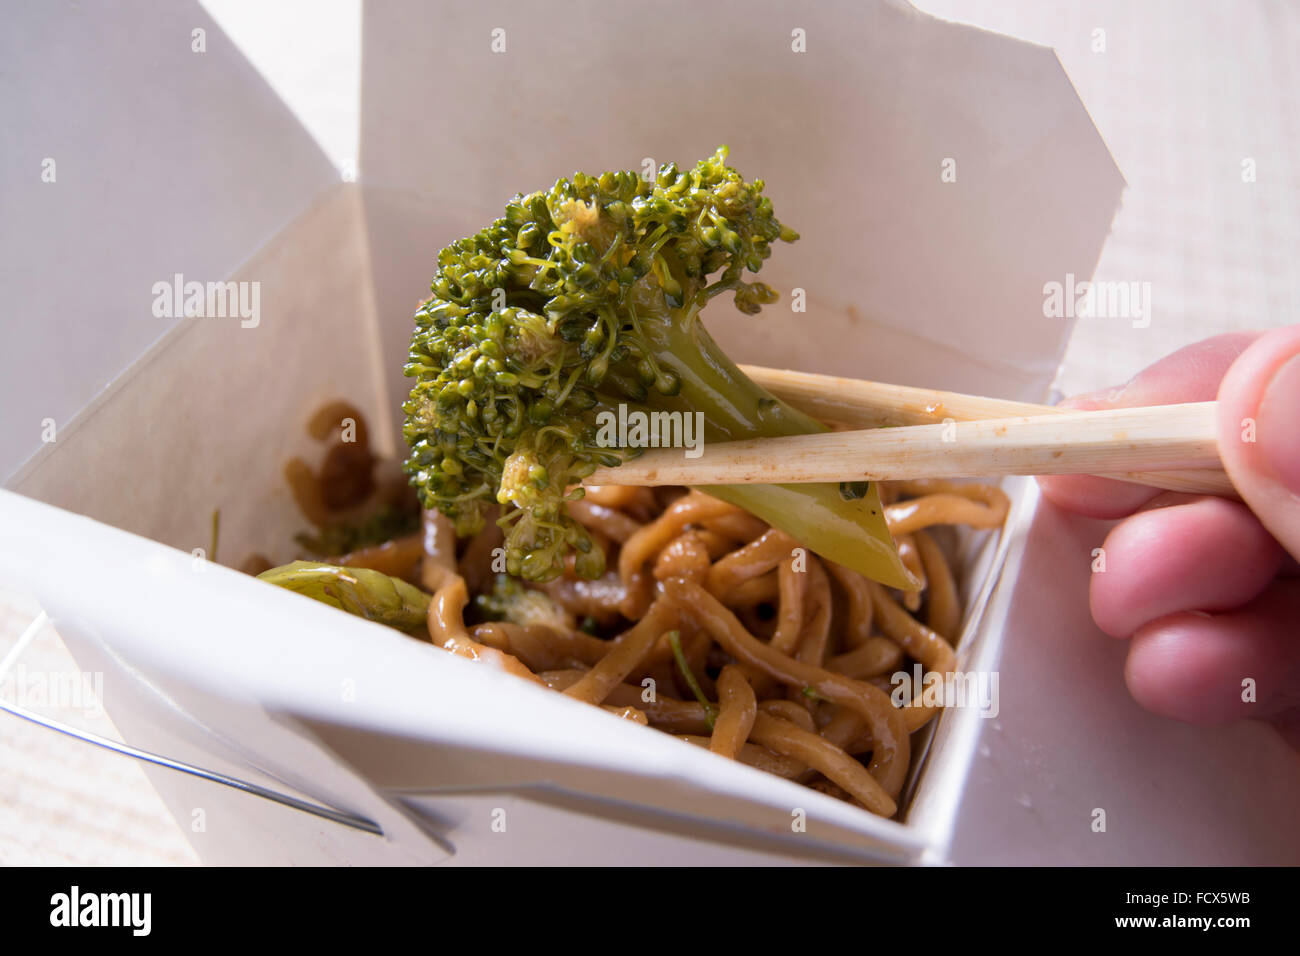 Chinese take out, broccoli held with chopsticks - Stock Image